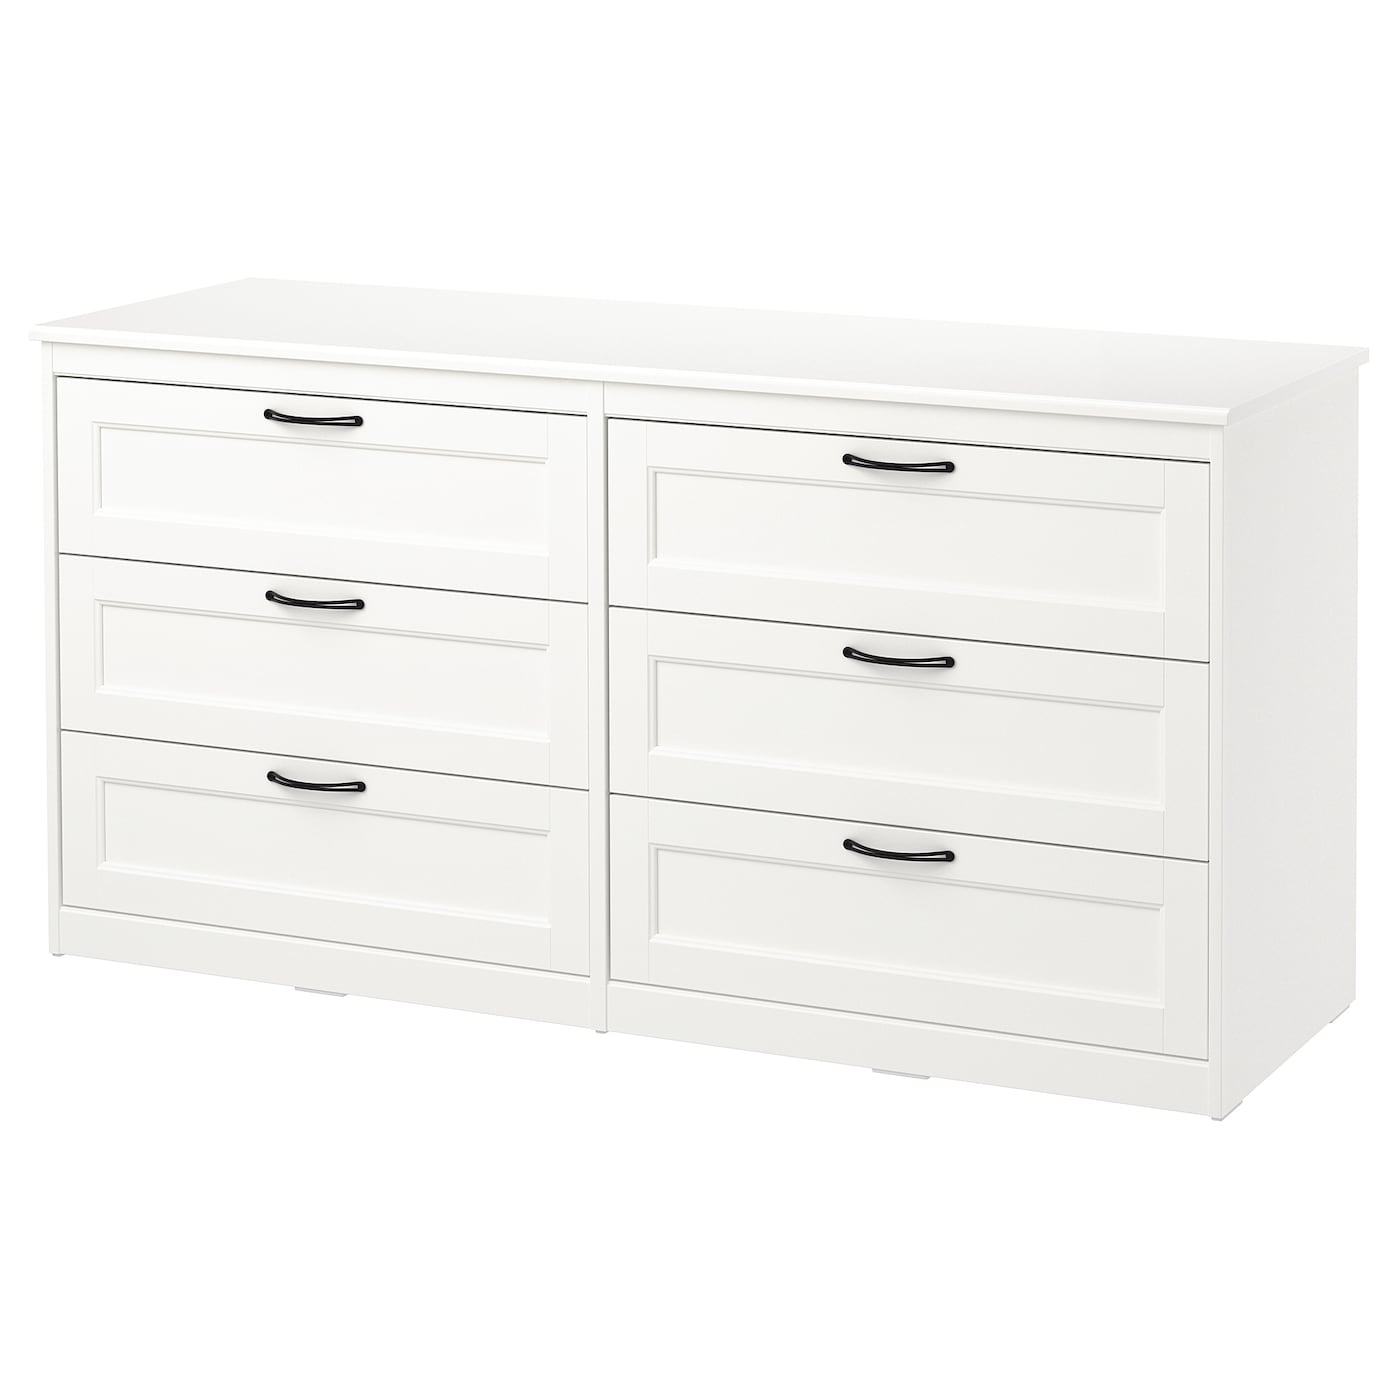 songesand commode 6 tiroirs blanc 161x81 cm ikea. Black Bedroom Furniture Sets. Home Design Ideas